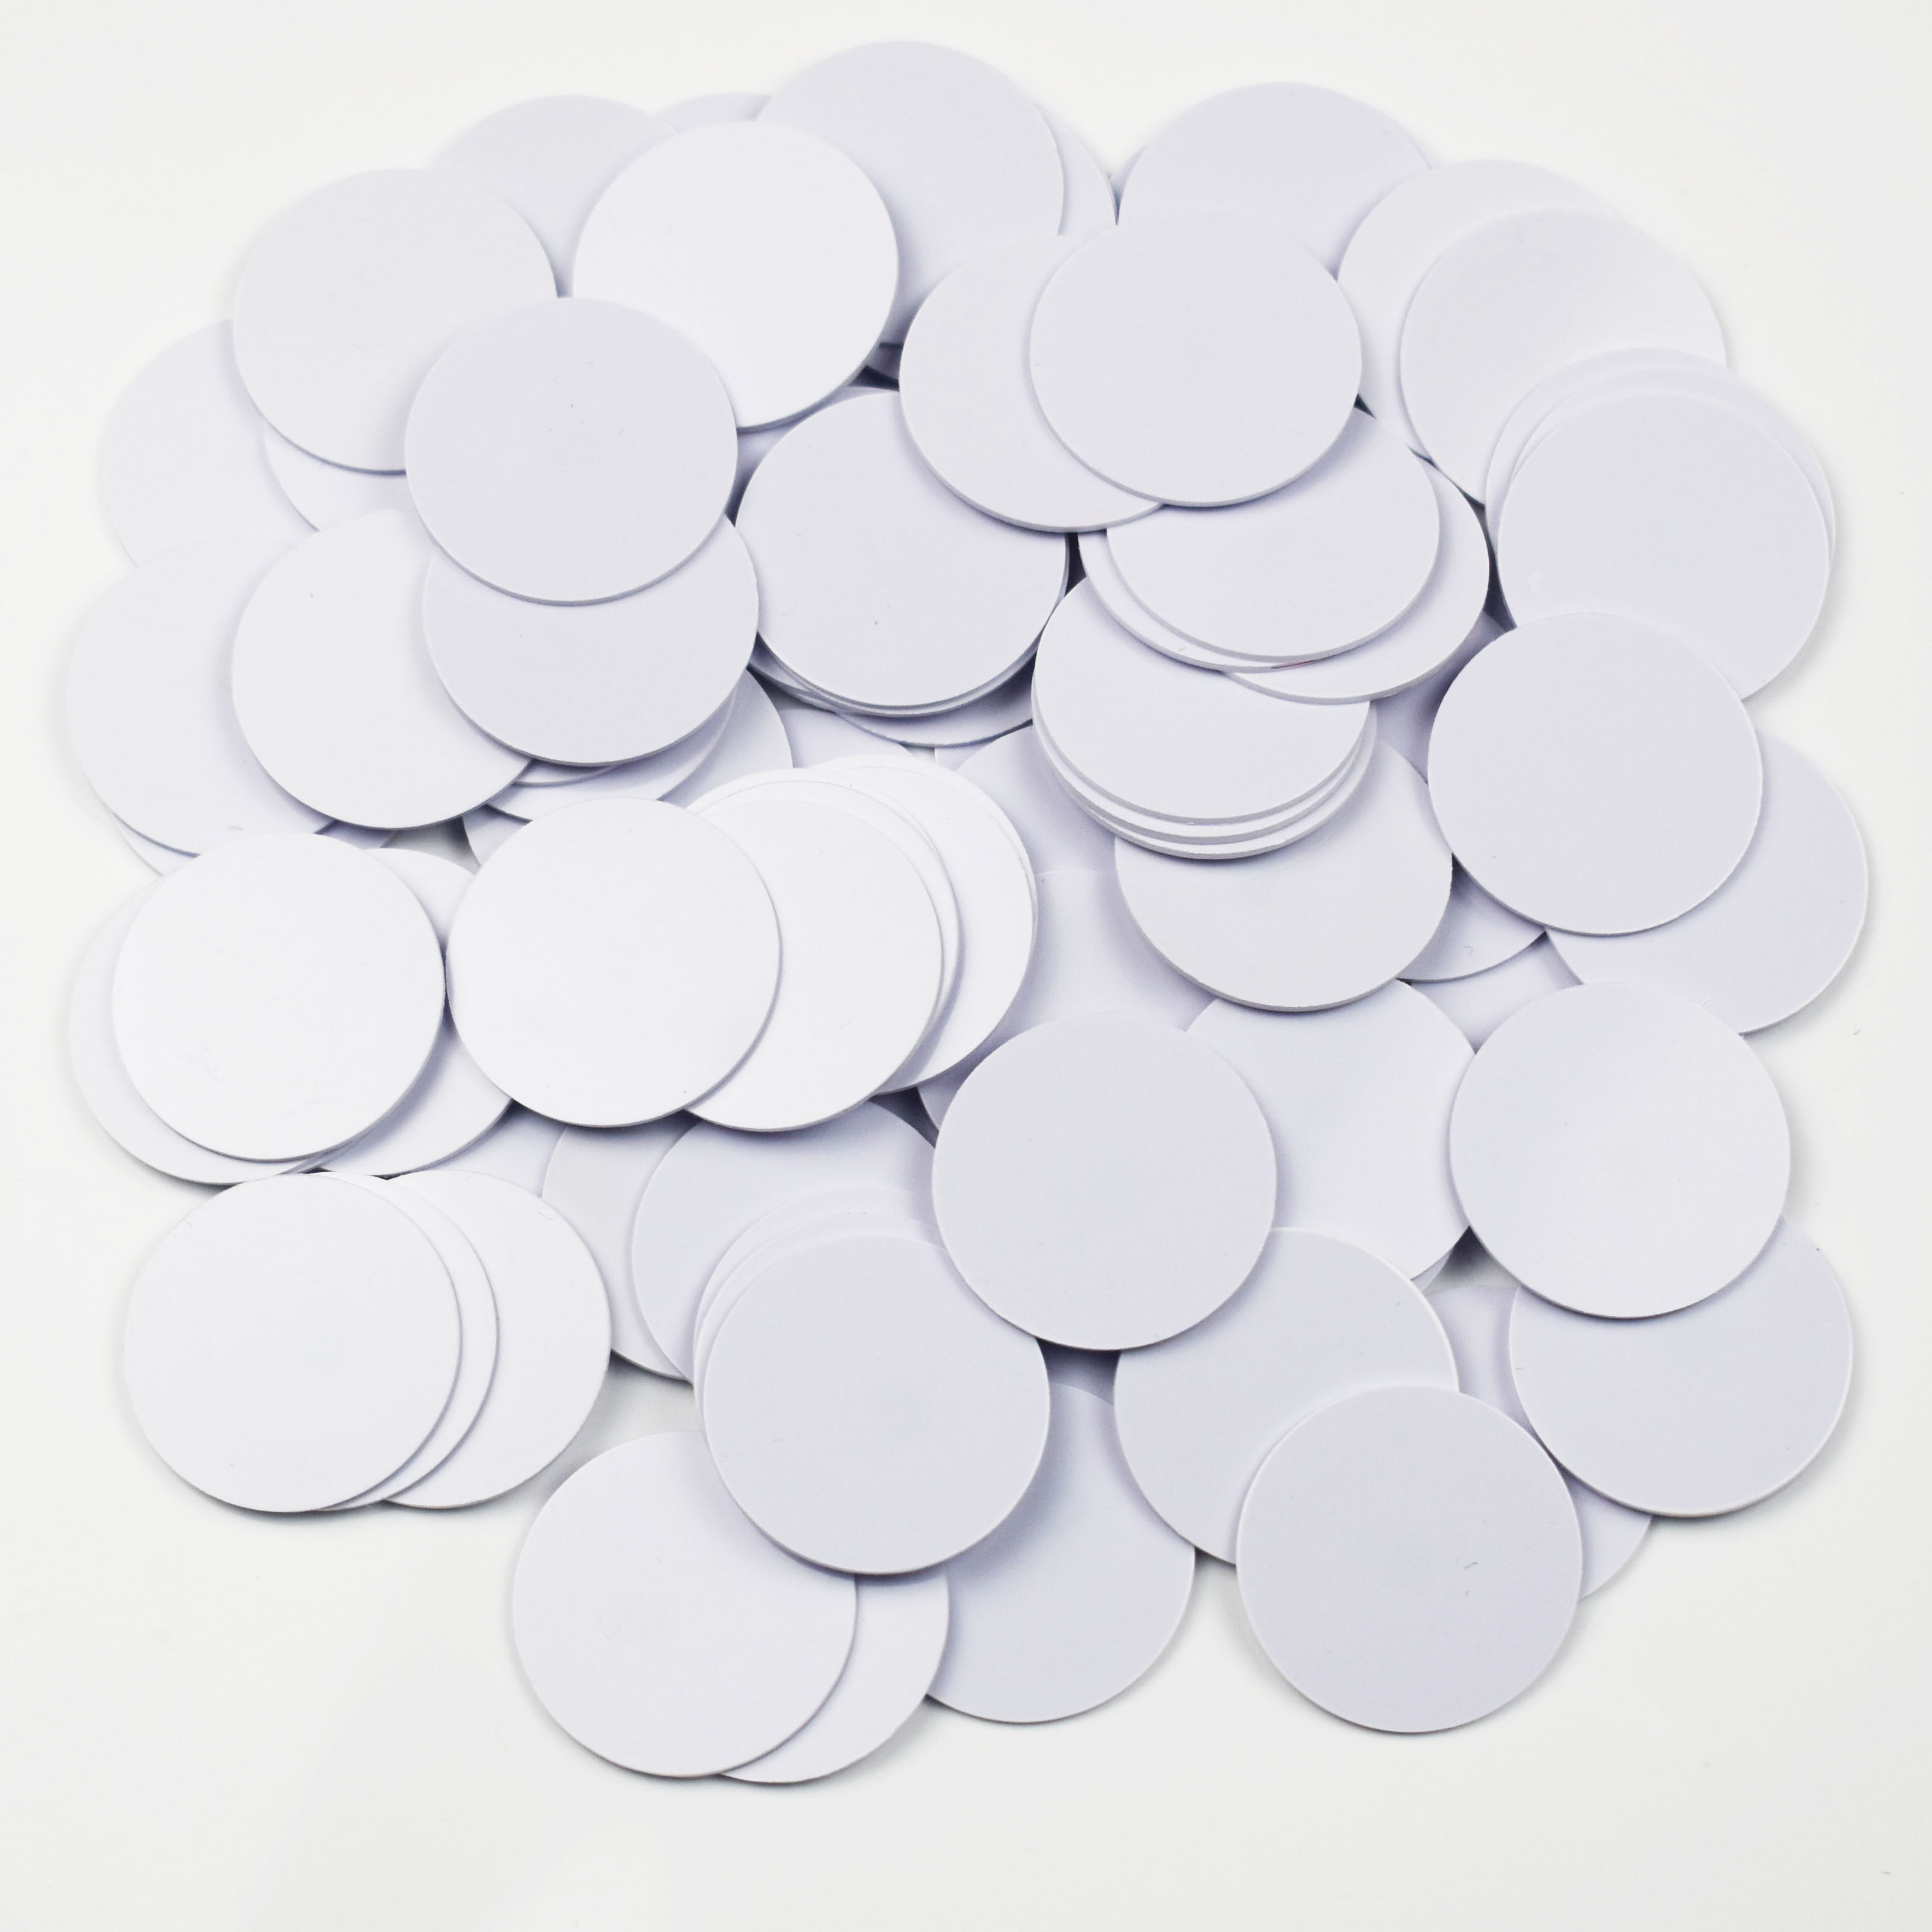 5PCS NTAG215 NFC Card Coin Tags Sticker Phone Available Adhesive Labels RFID Tag 25mm